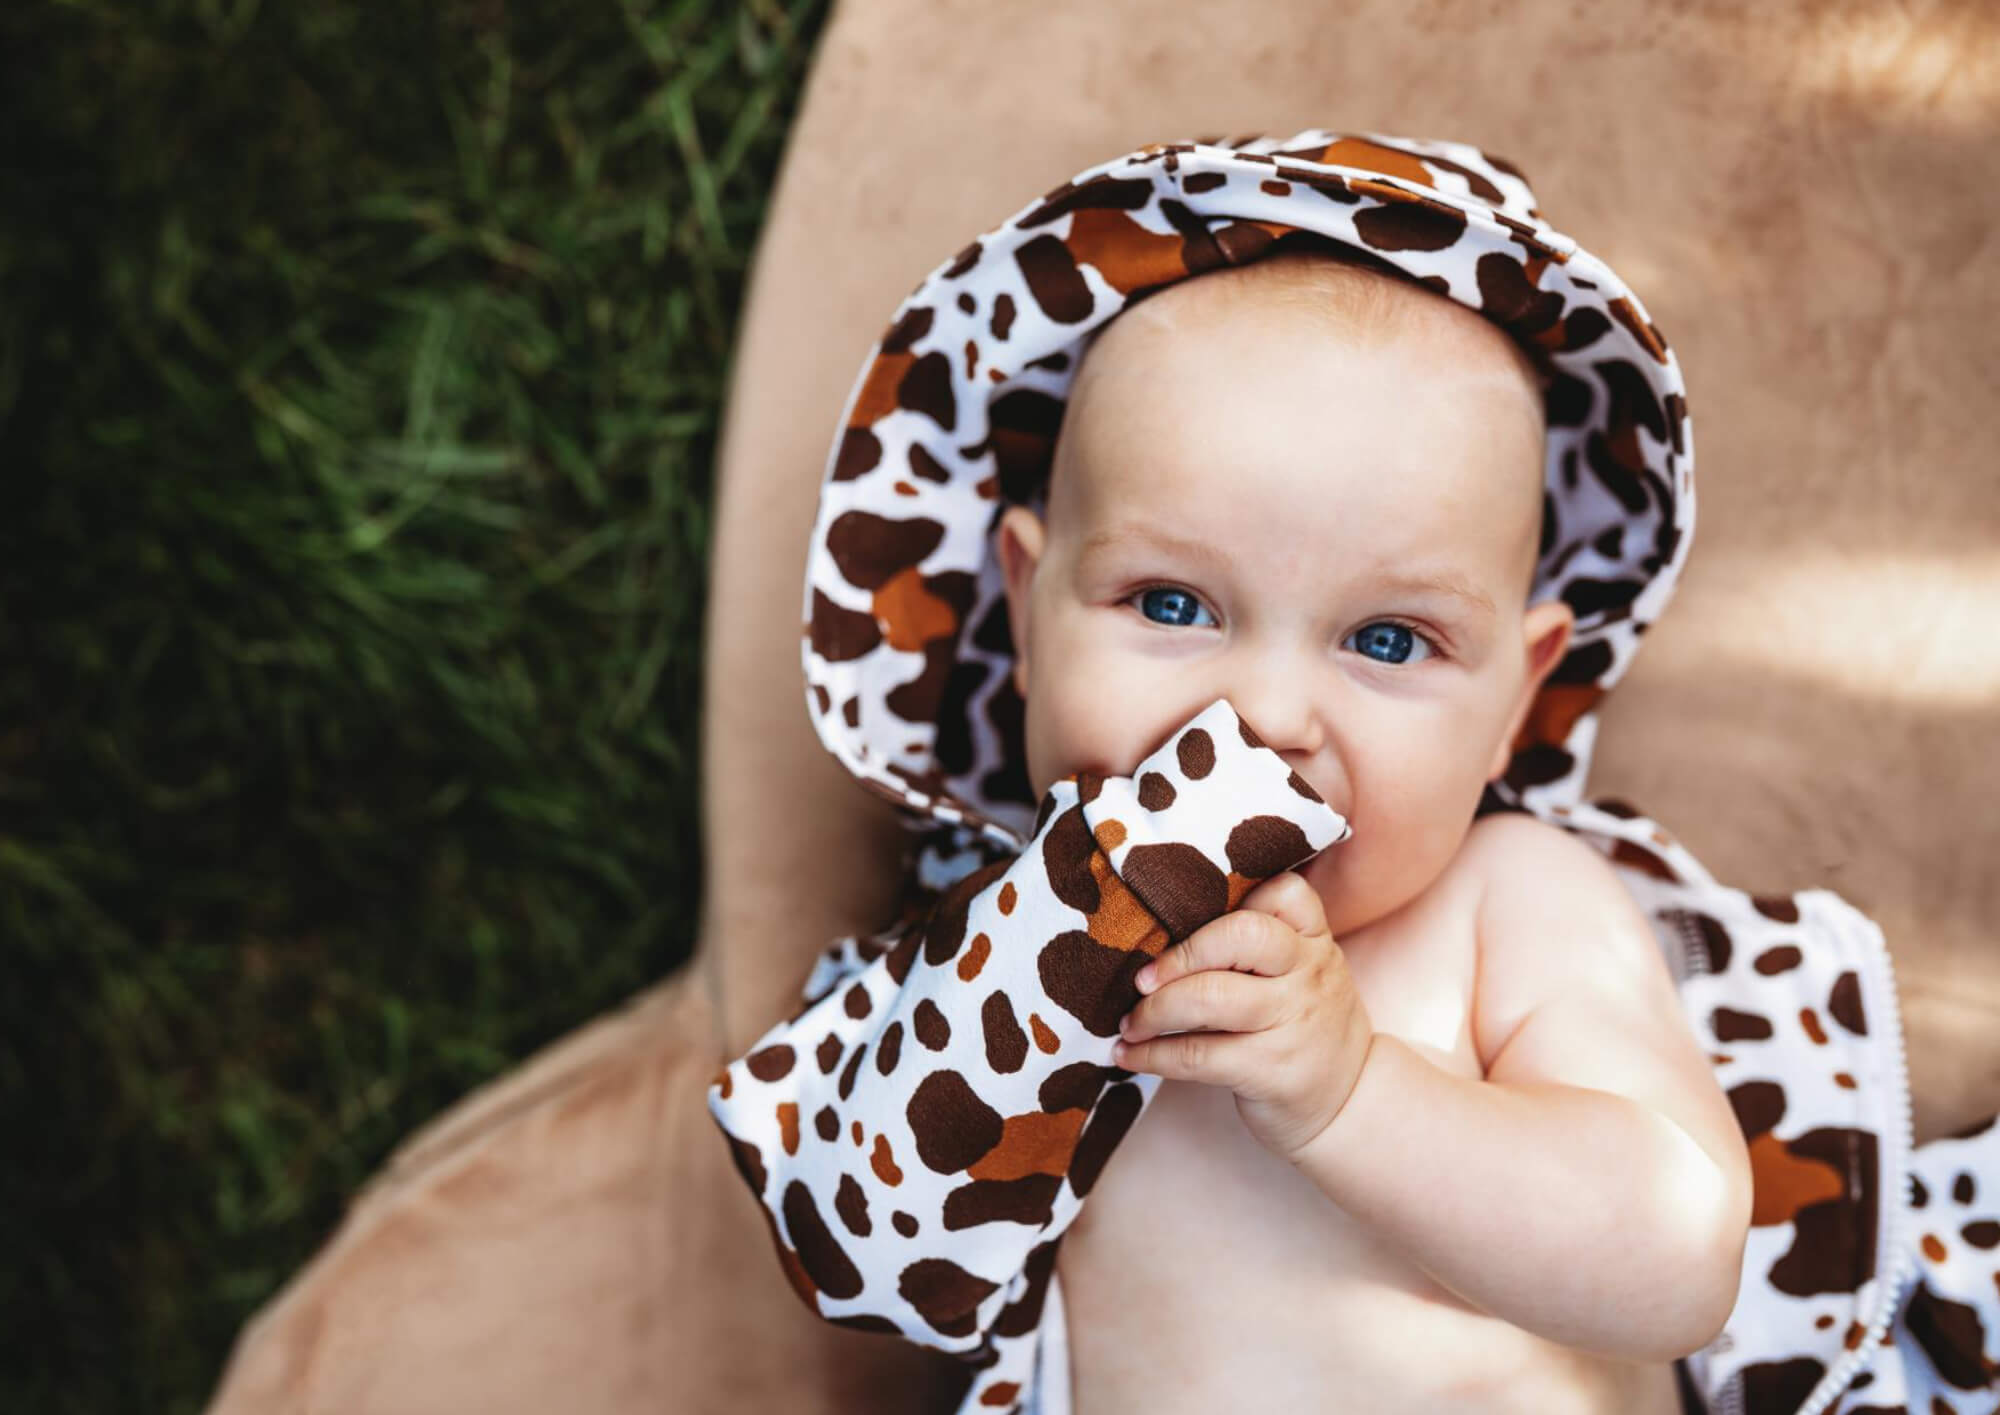 Fashionable children's clothing – how to choose it?